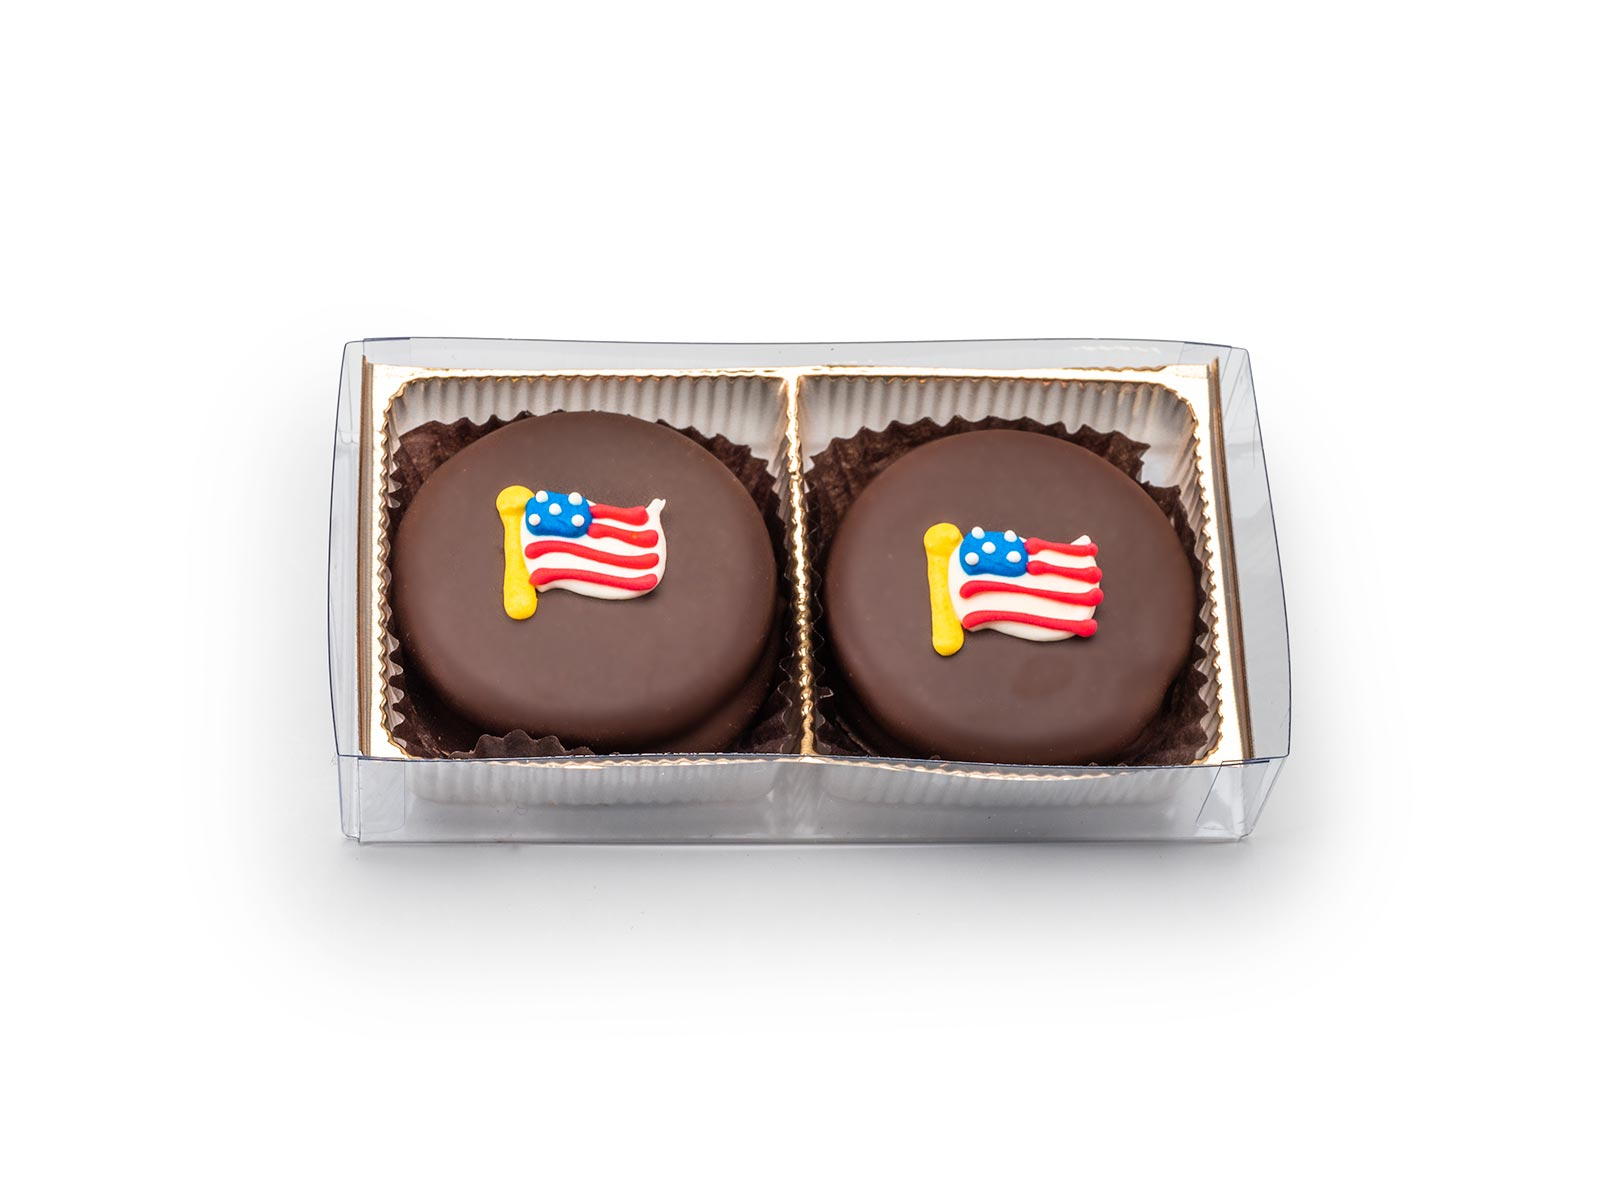 Double Stuf Oreo® Pair for 4th of July